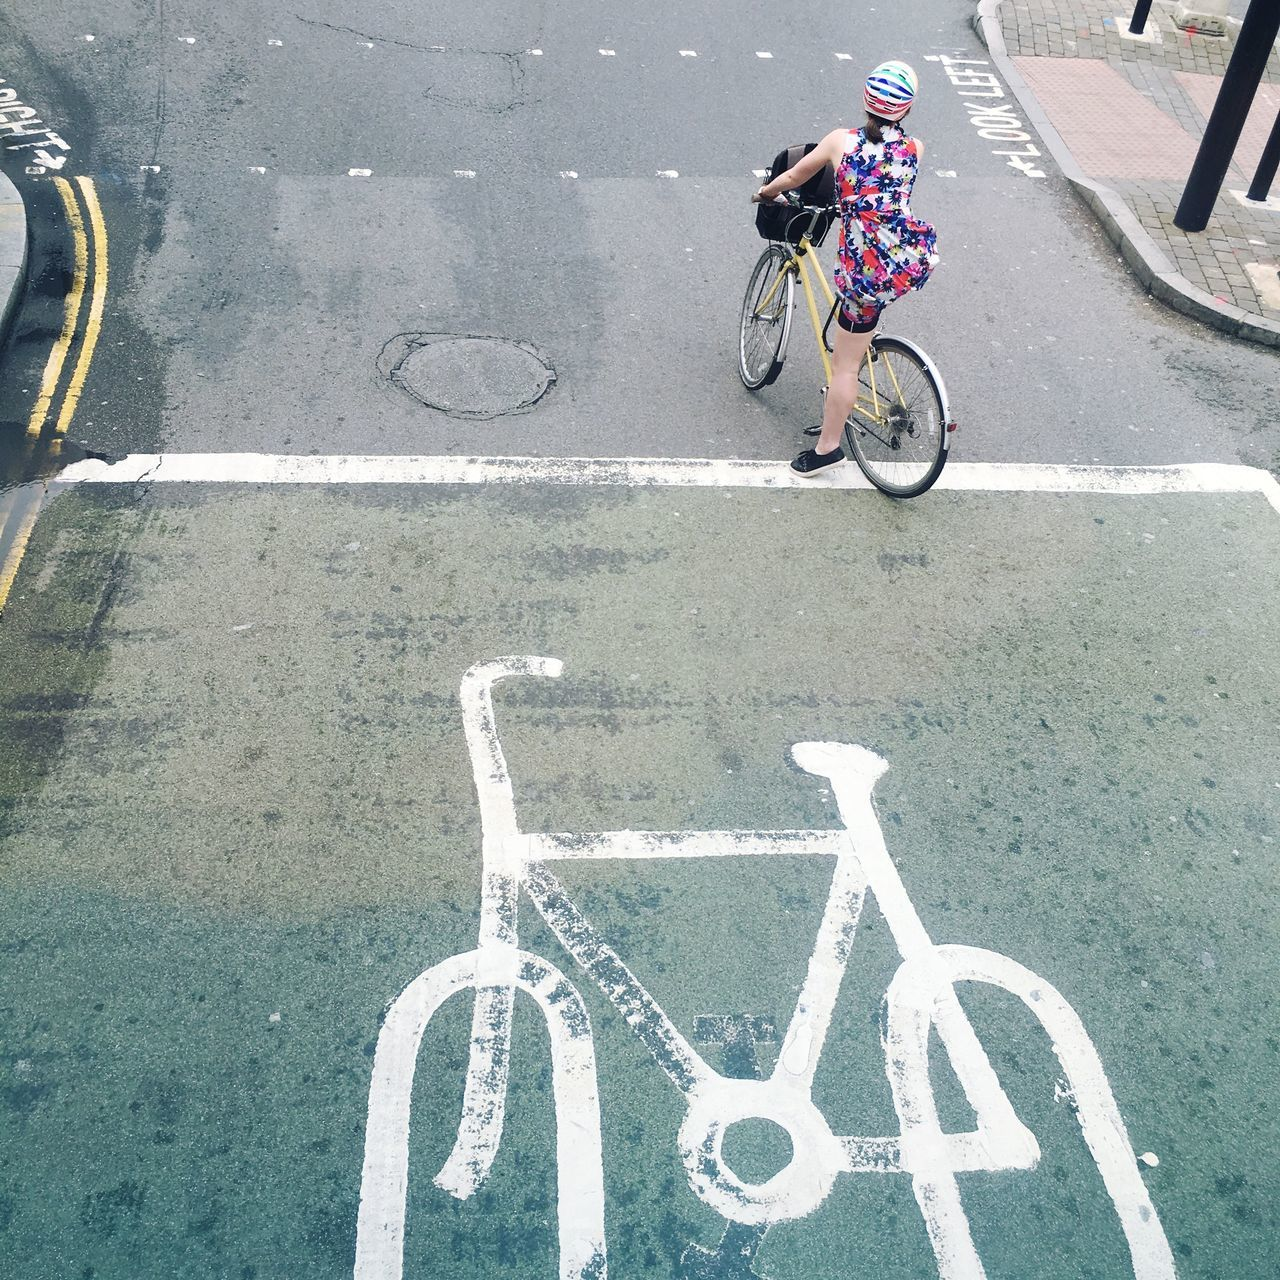 High Angle View Of Woman Riding Bicycle On Street